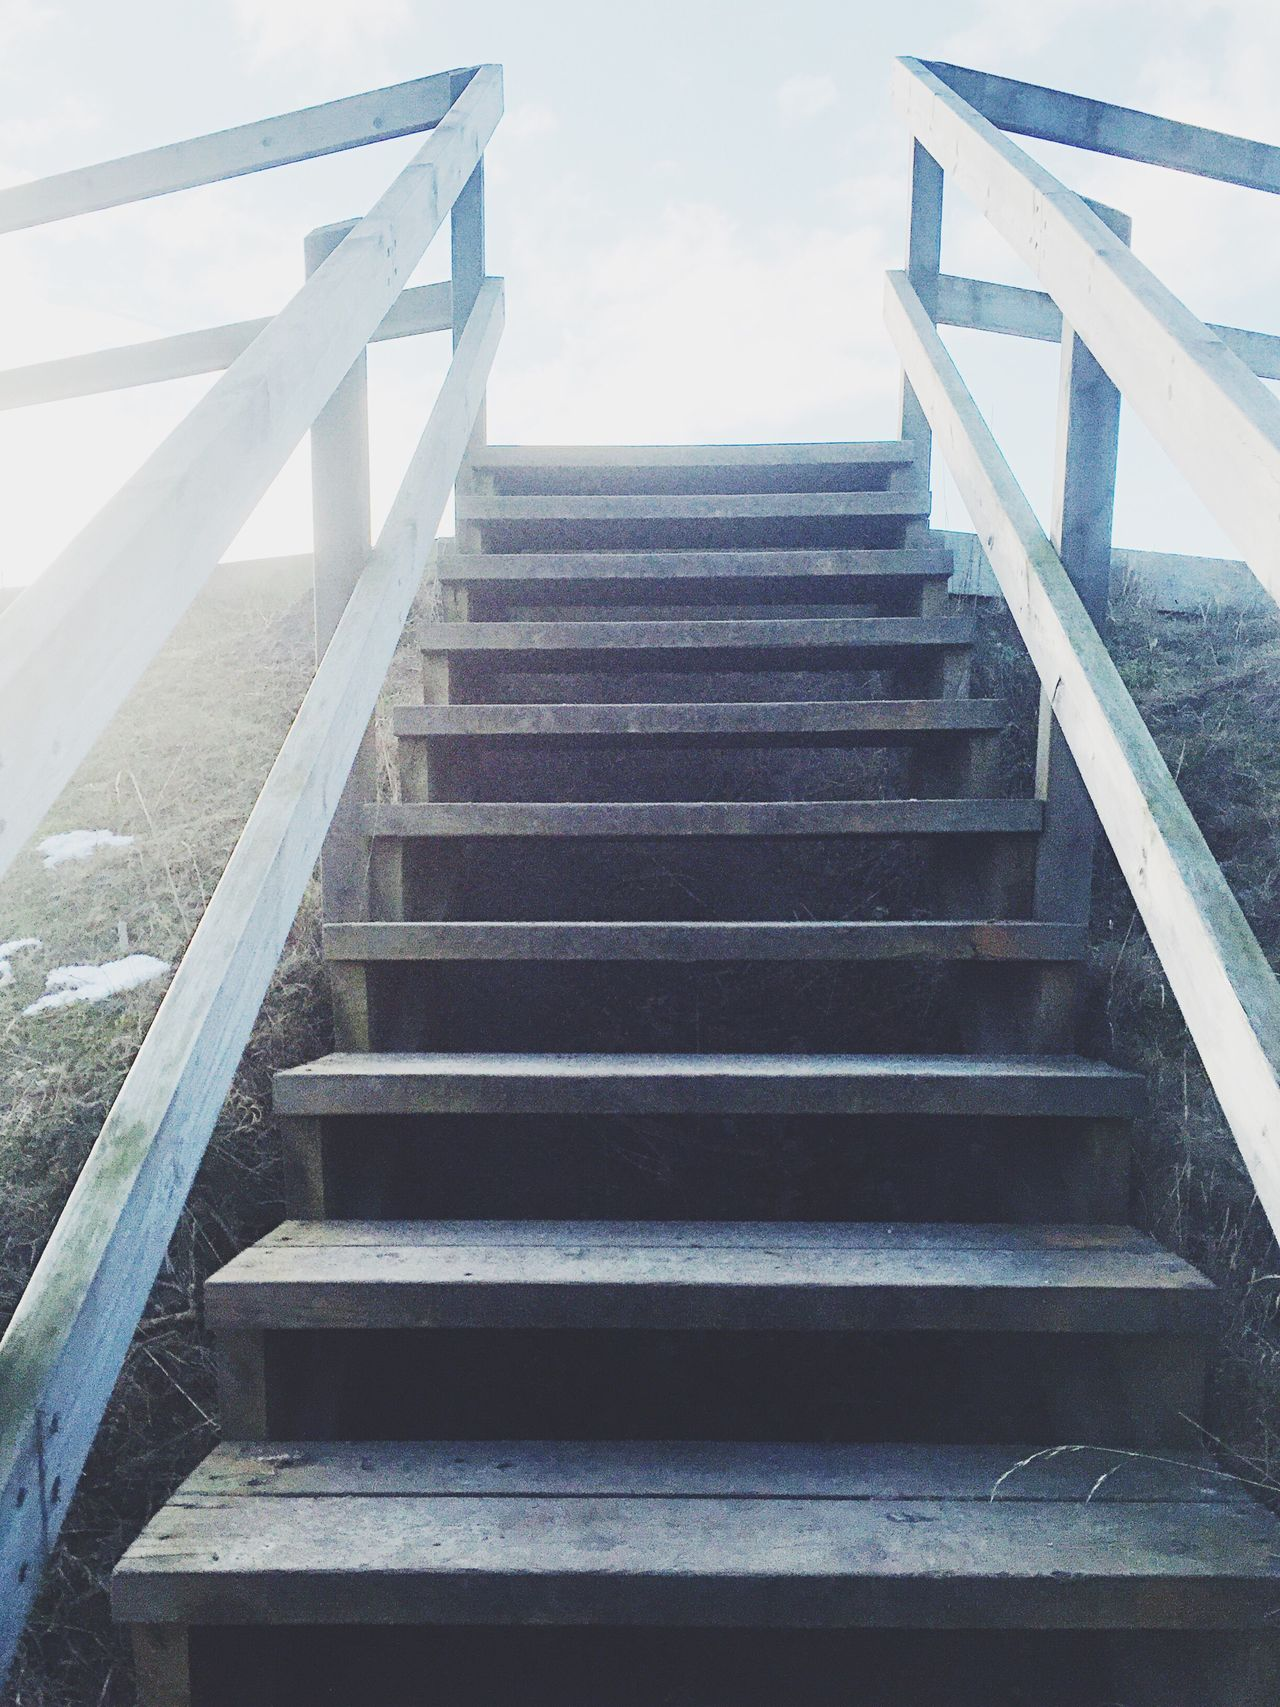 Railing Staircase Steps And Staircases Steps Stairs Hand Rail Stairway Day The Way Forward Sky No People Outdoors Zigzag Architecture